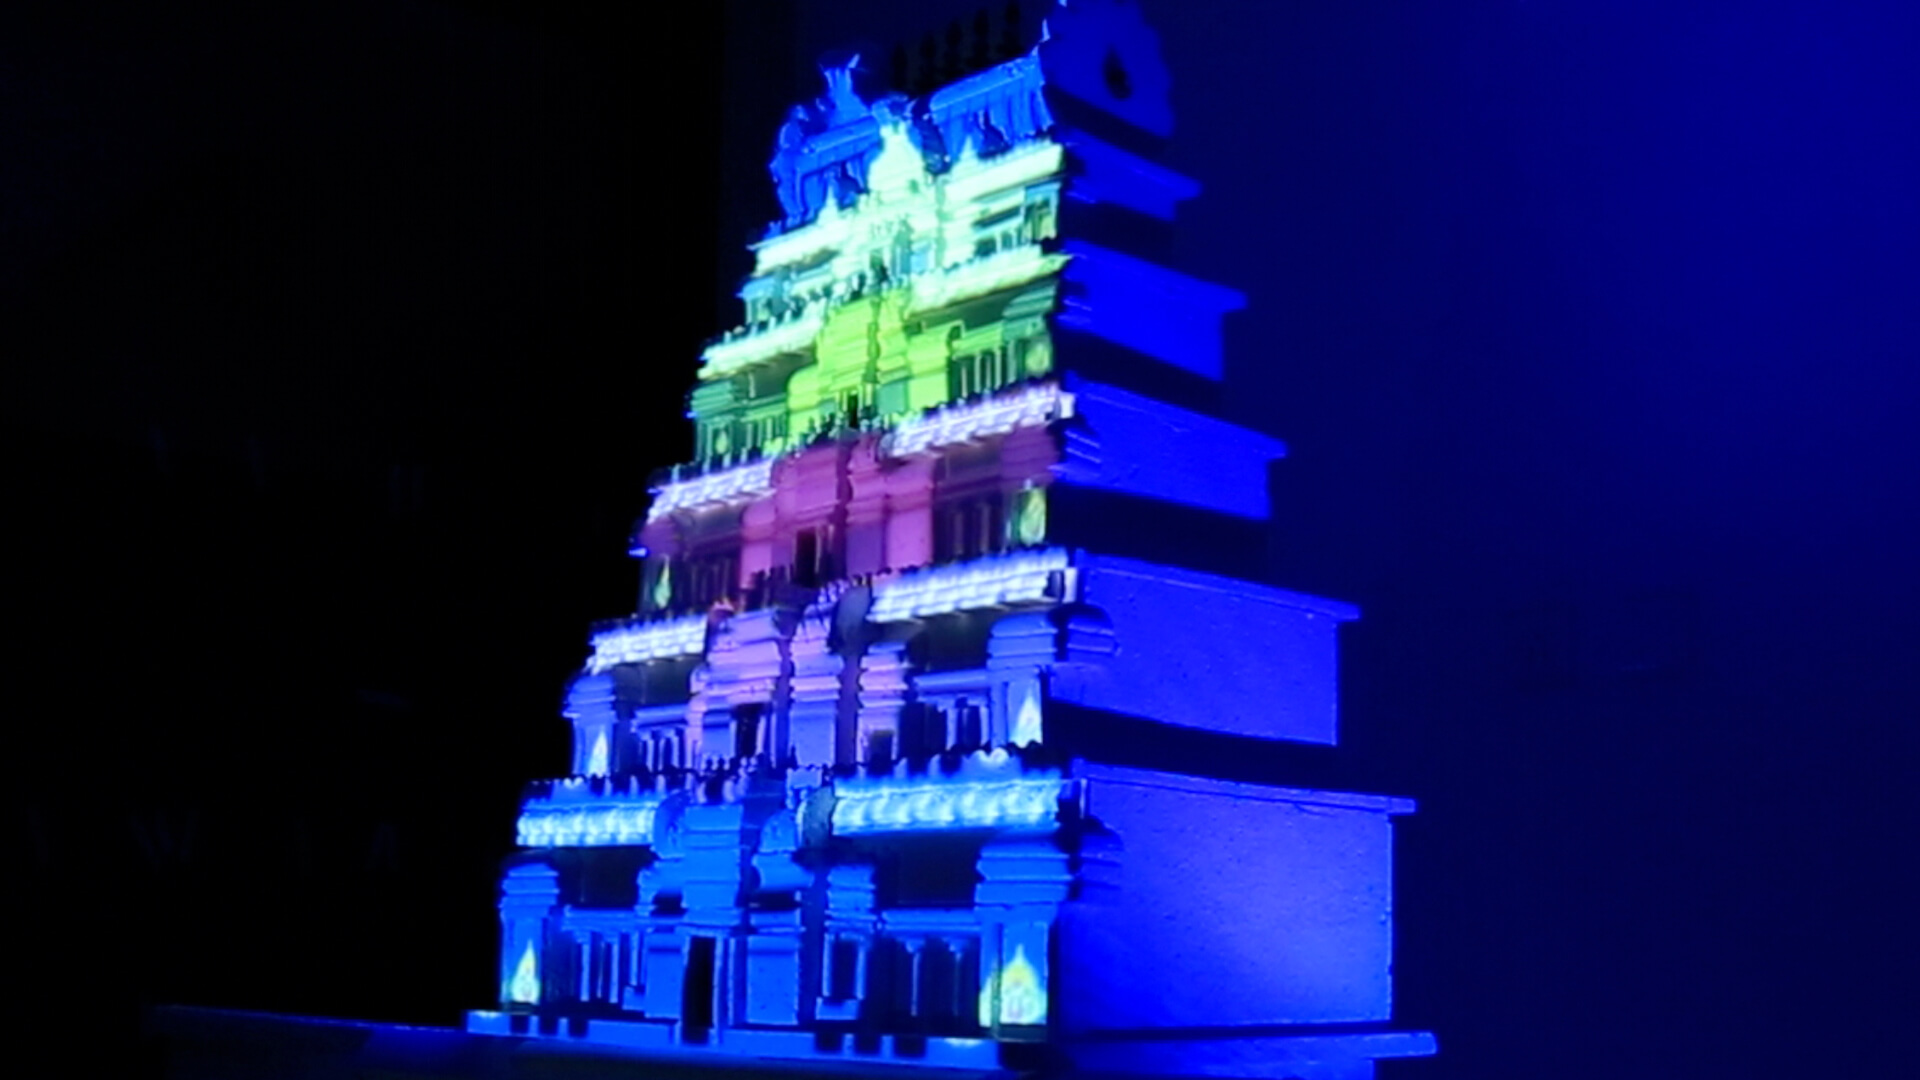 temple projection mapping, srushti, image mapping, holographic projection